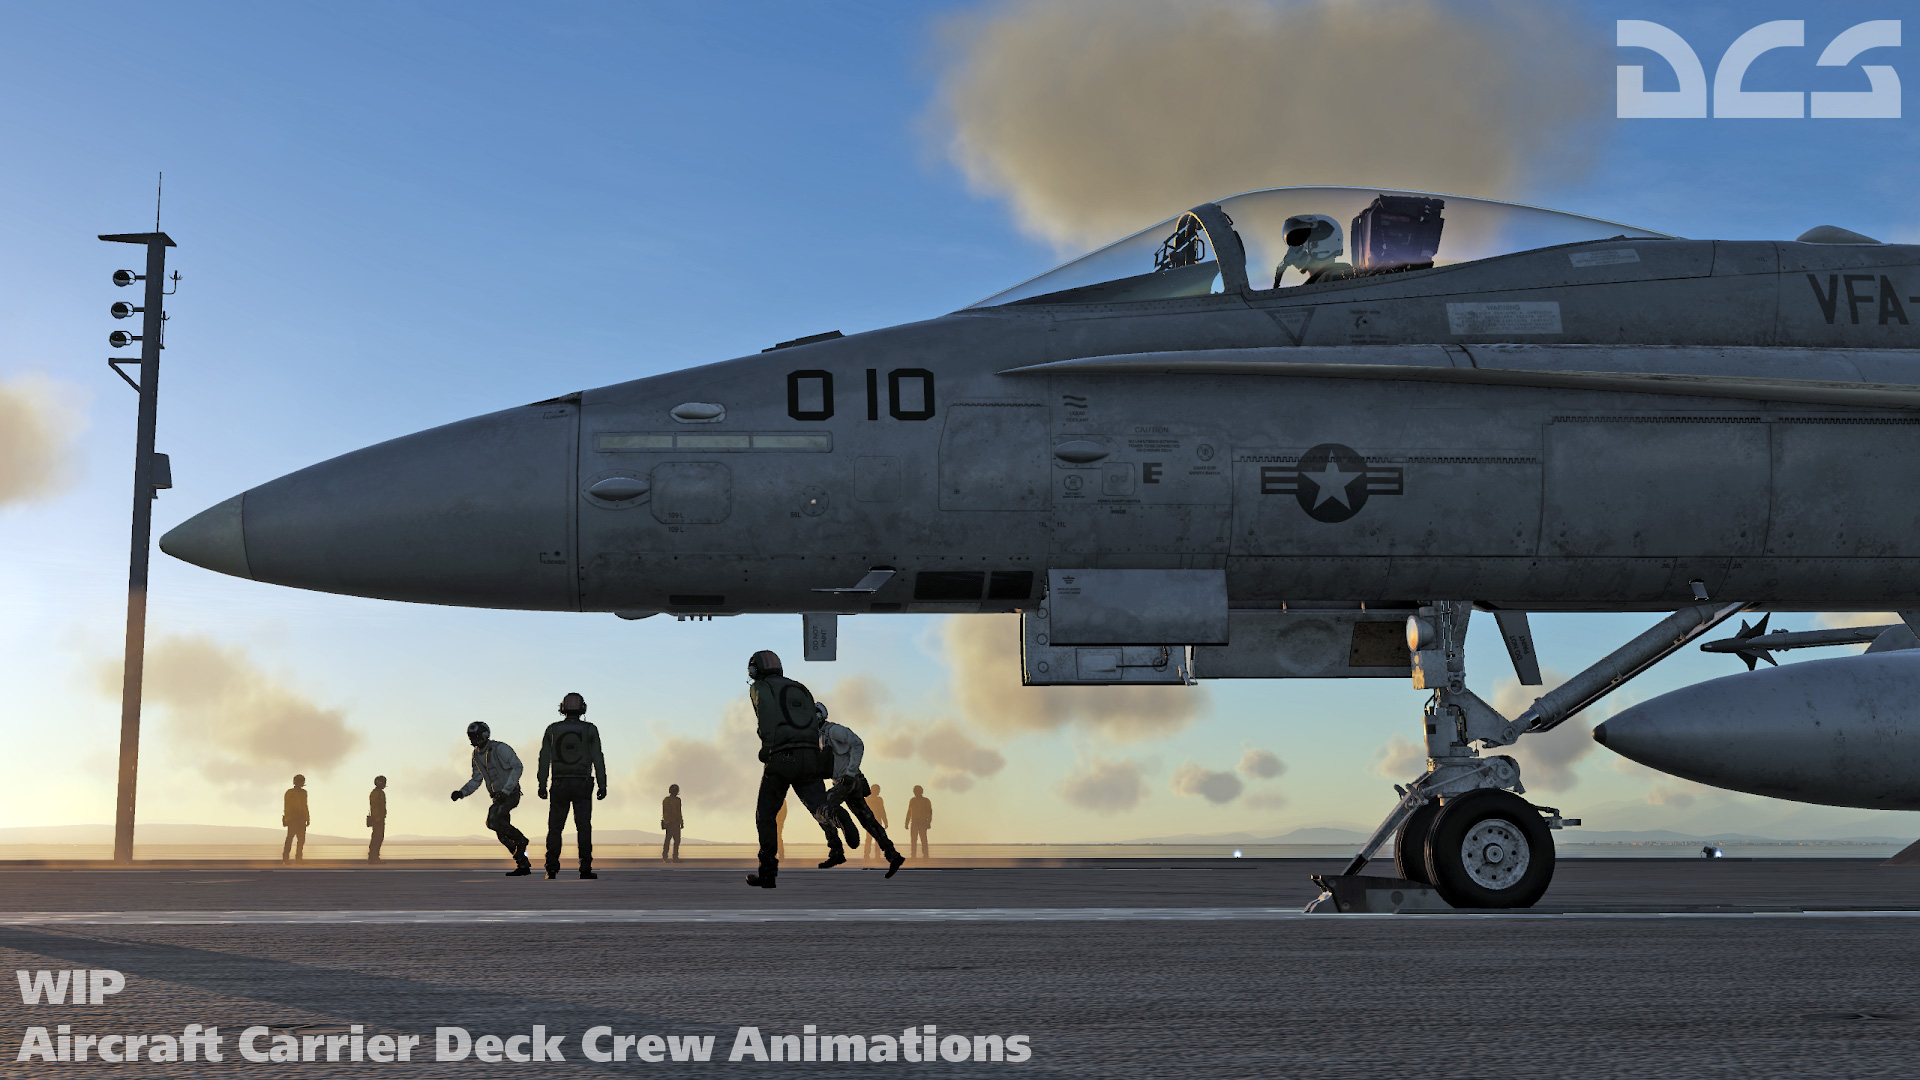 Aircraft-Carrier-Deck-Crew-Animations-05